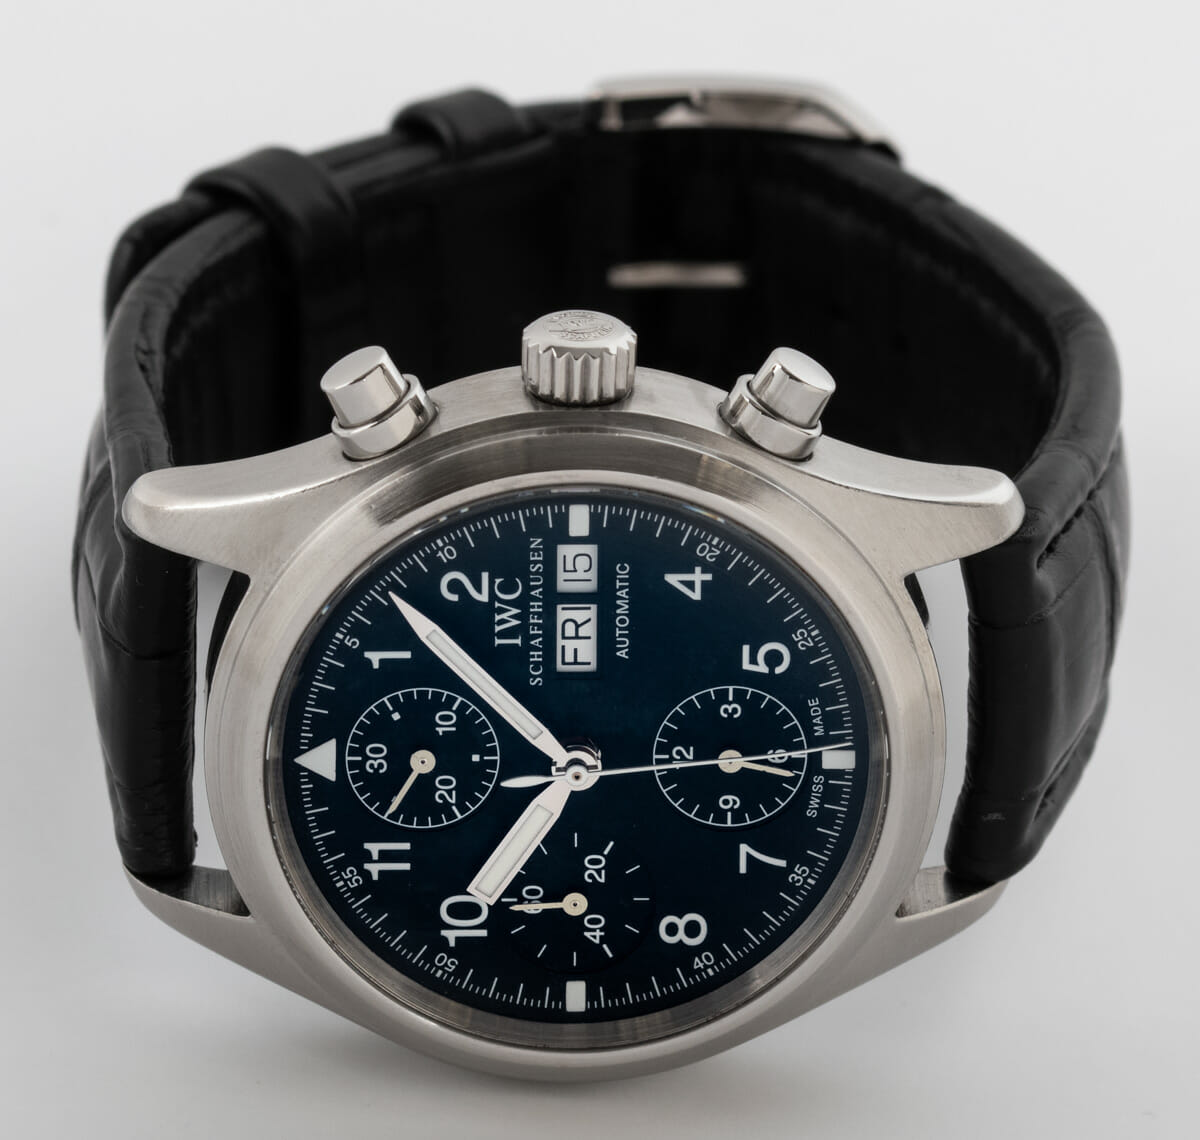 Front View of Fliegerchronograph